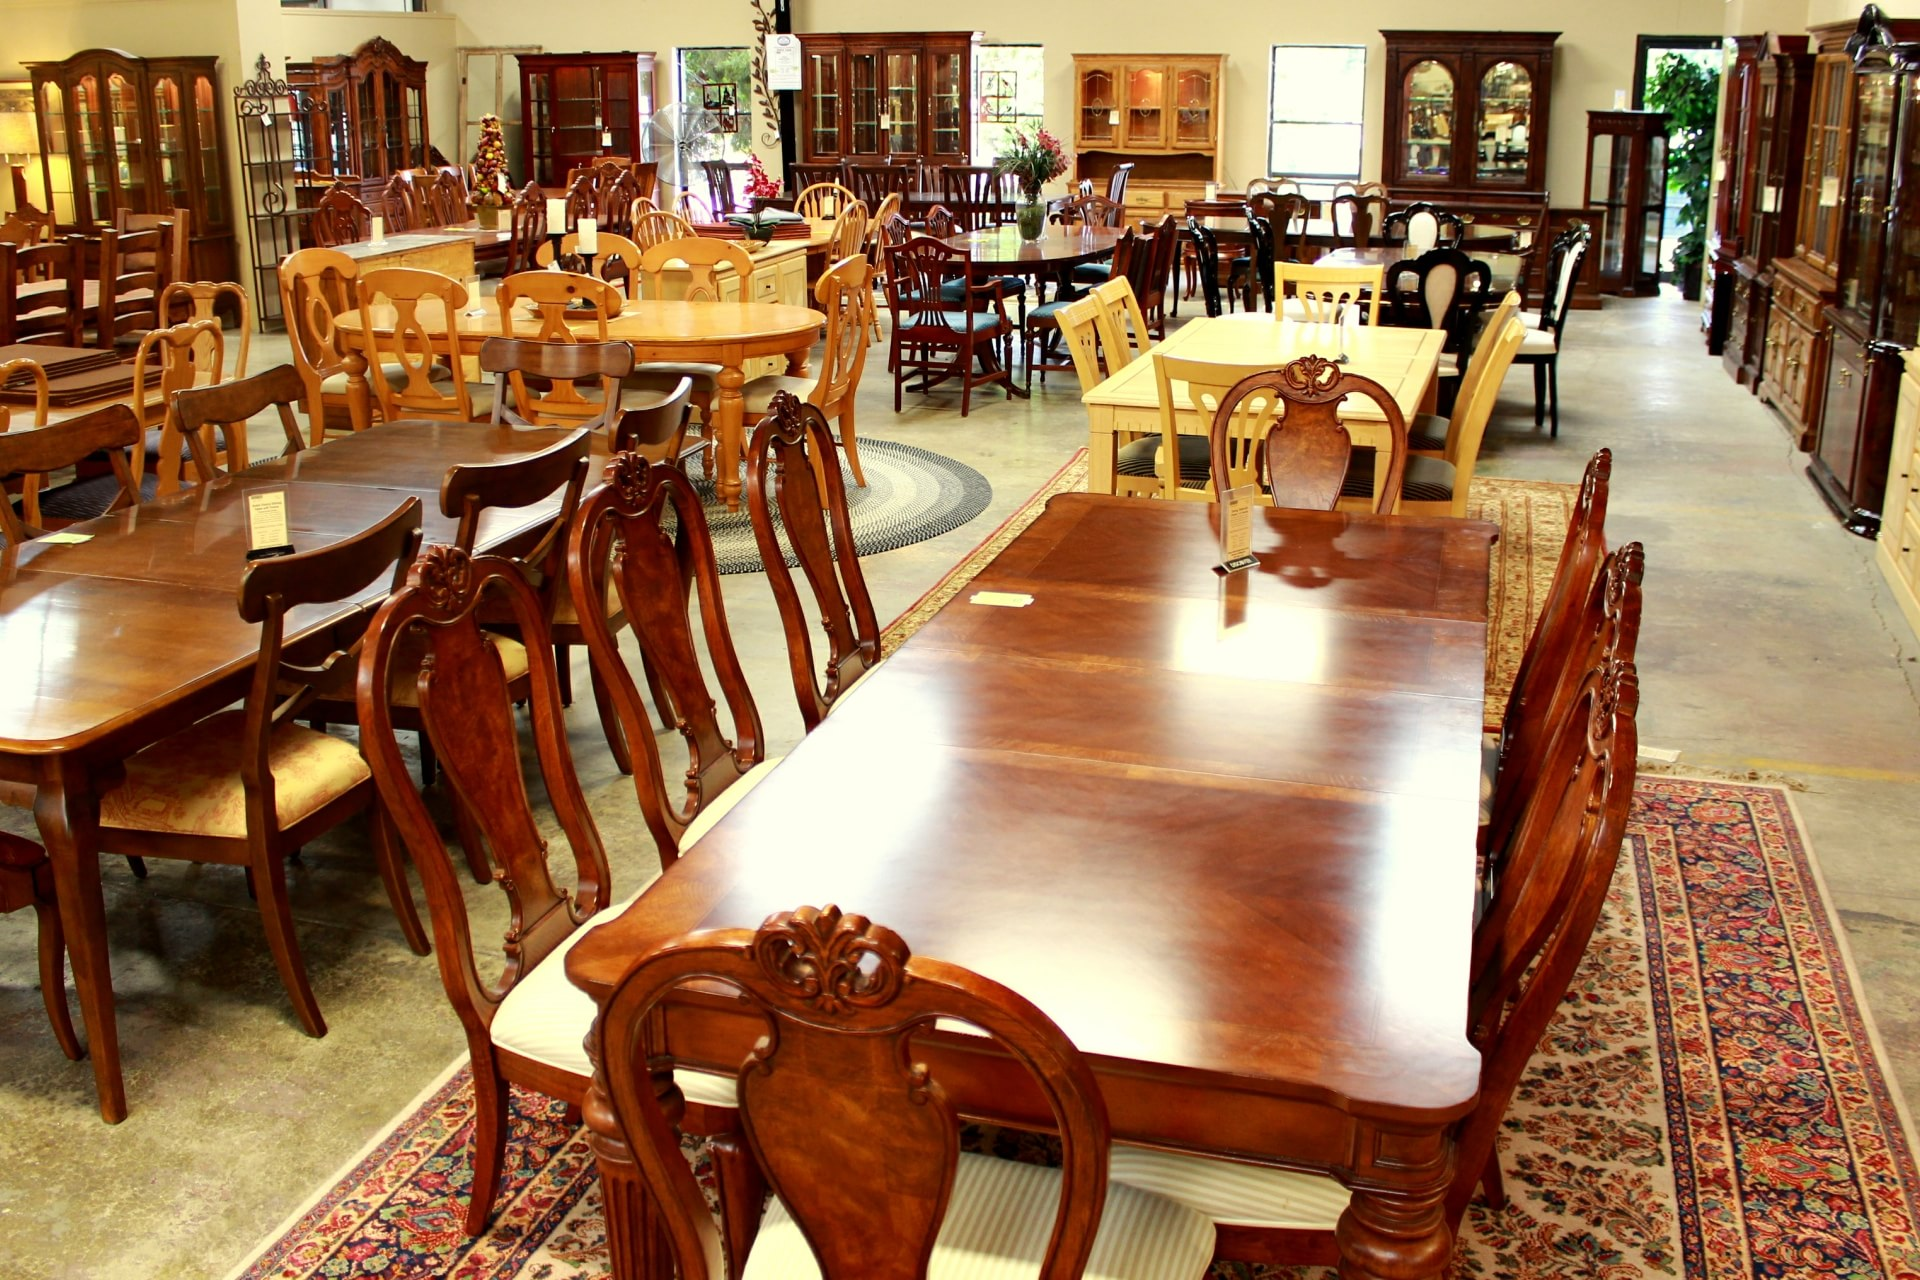 choosing a dining table upscale consignment e 35 modern dining room furniture set ultra upscale dining